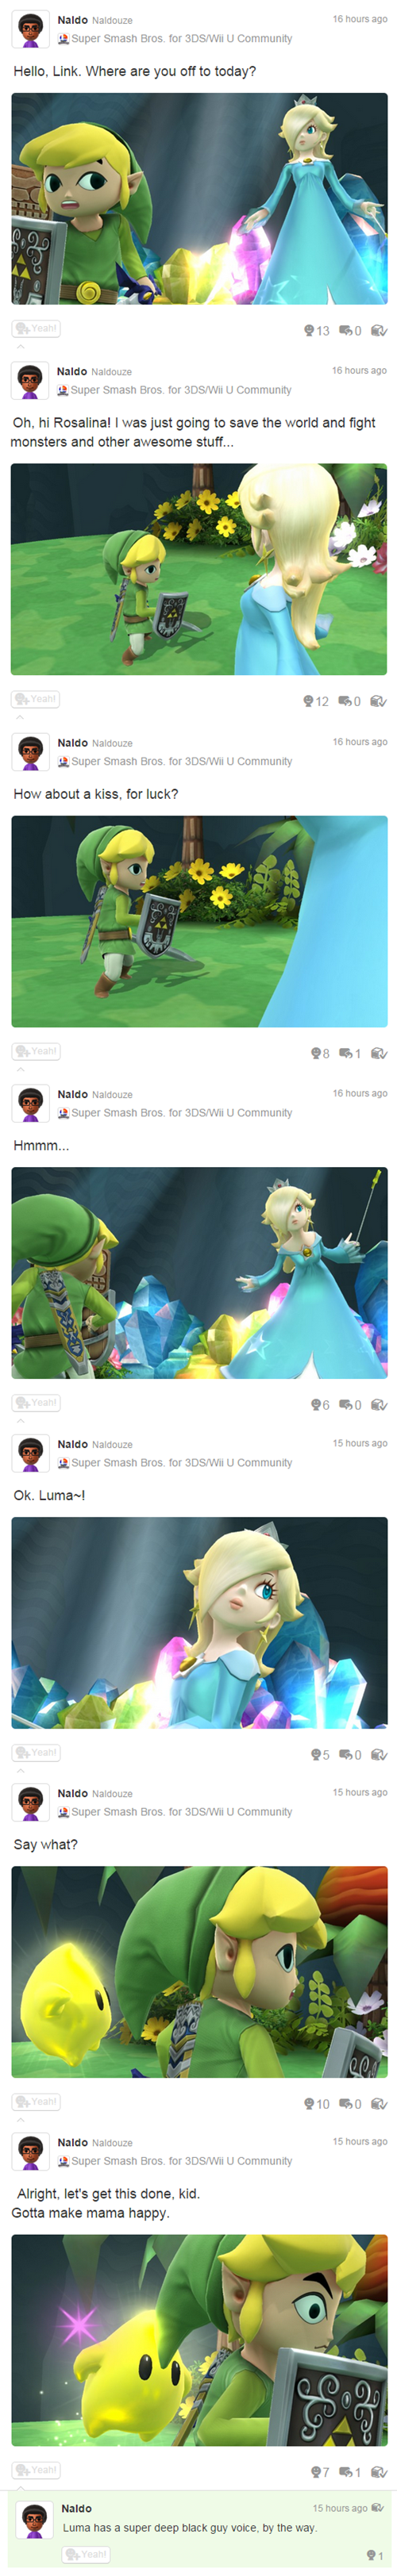 Luma Helps Out Rosalina With Everything